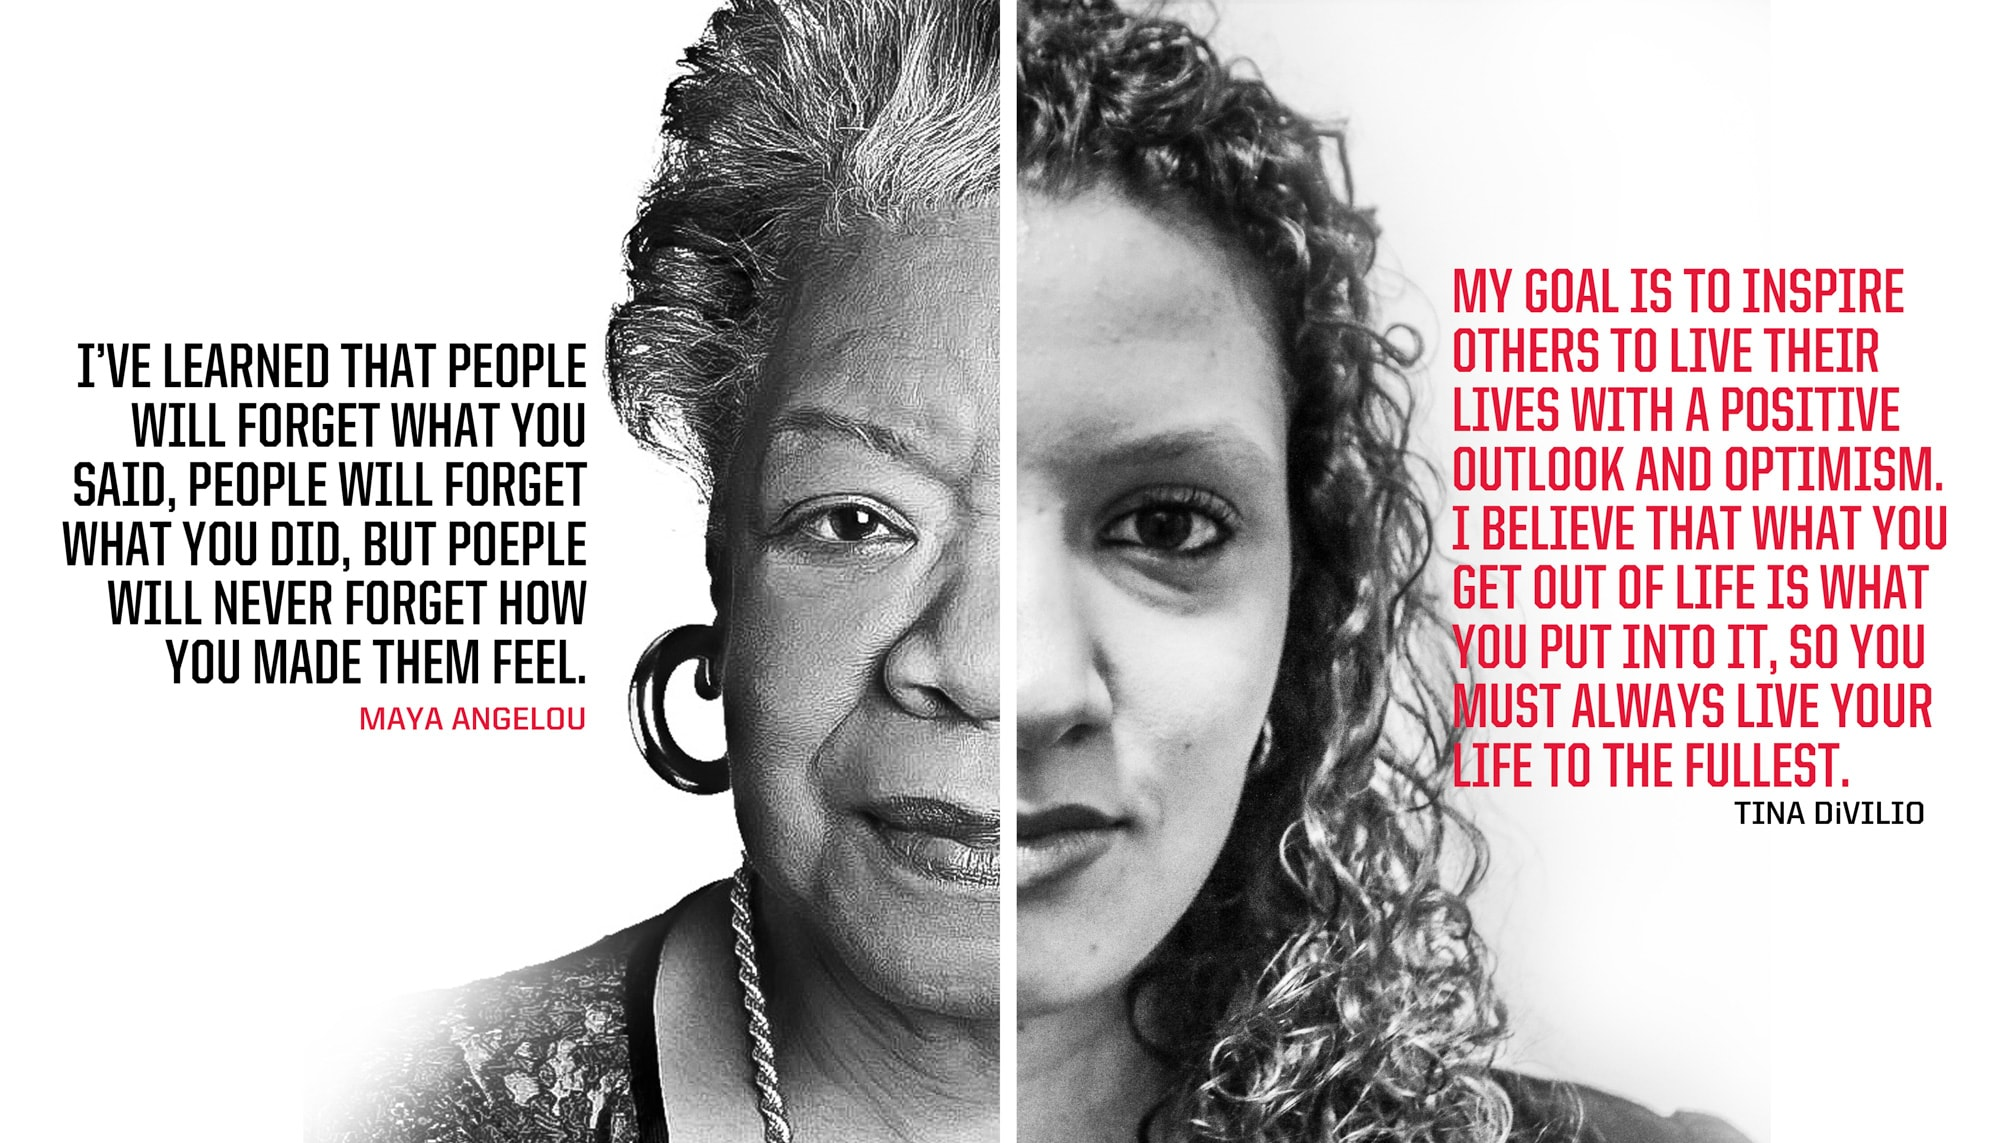 """angelou essays Maya angelou (/ ˈ æ n dʒ """" book essays"""" help with sat essays ə l oʊ / ( listen) born marguerite annie johnson doctoral thesis proposal april 4, maya angelou essay 1928 argumentative essay key points – may 28, 2014) was an maya angelou essay american poet, singer, memoirist, and essay on legalizing marijuana term paper vs research."""